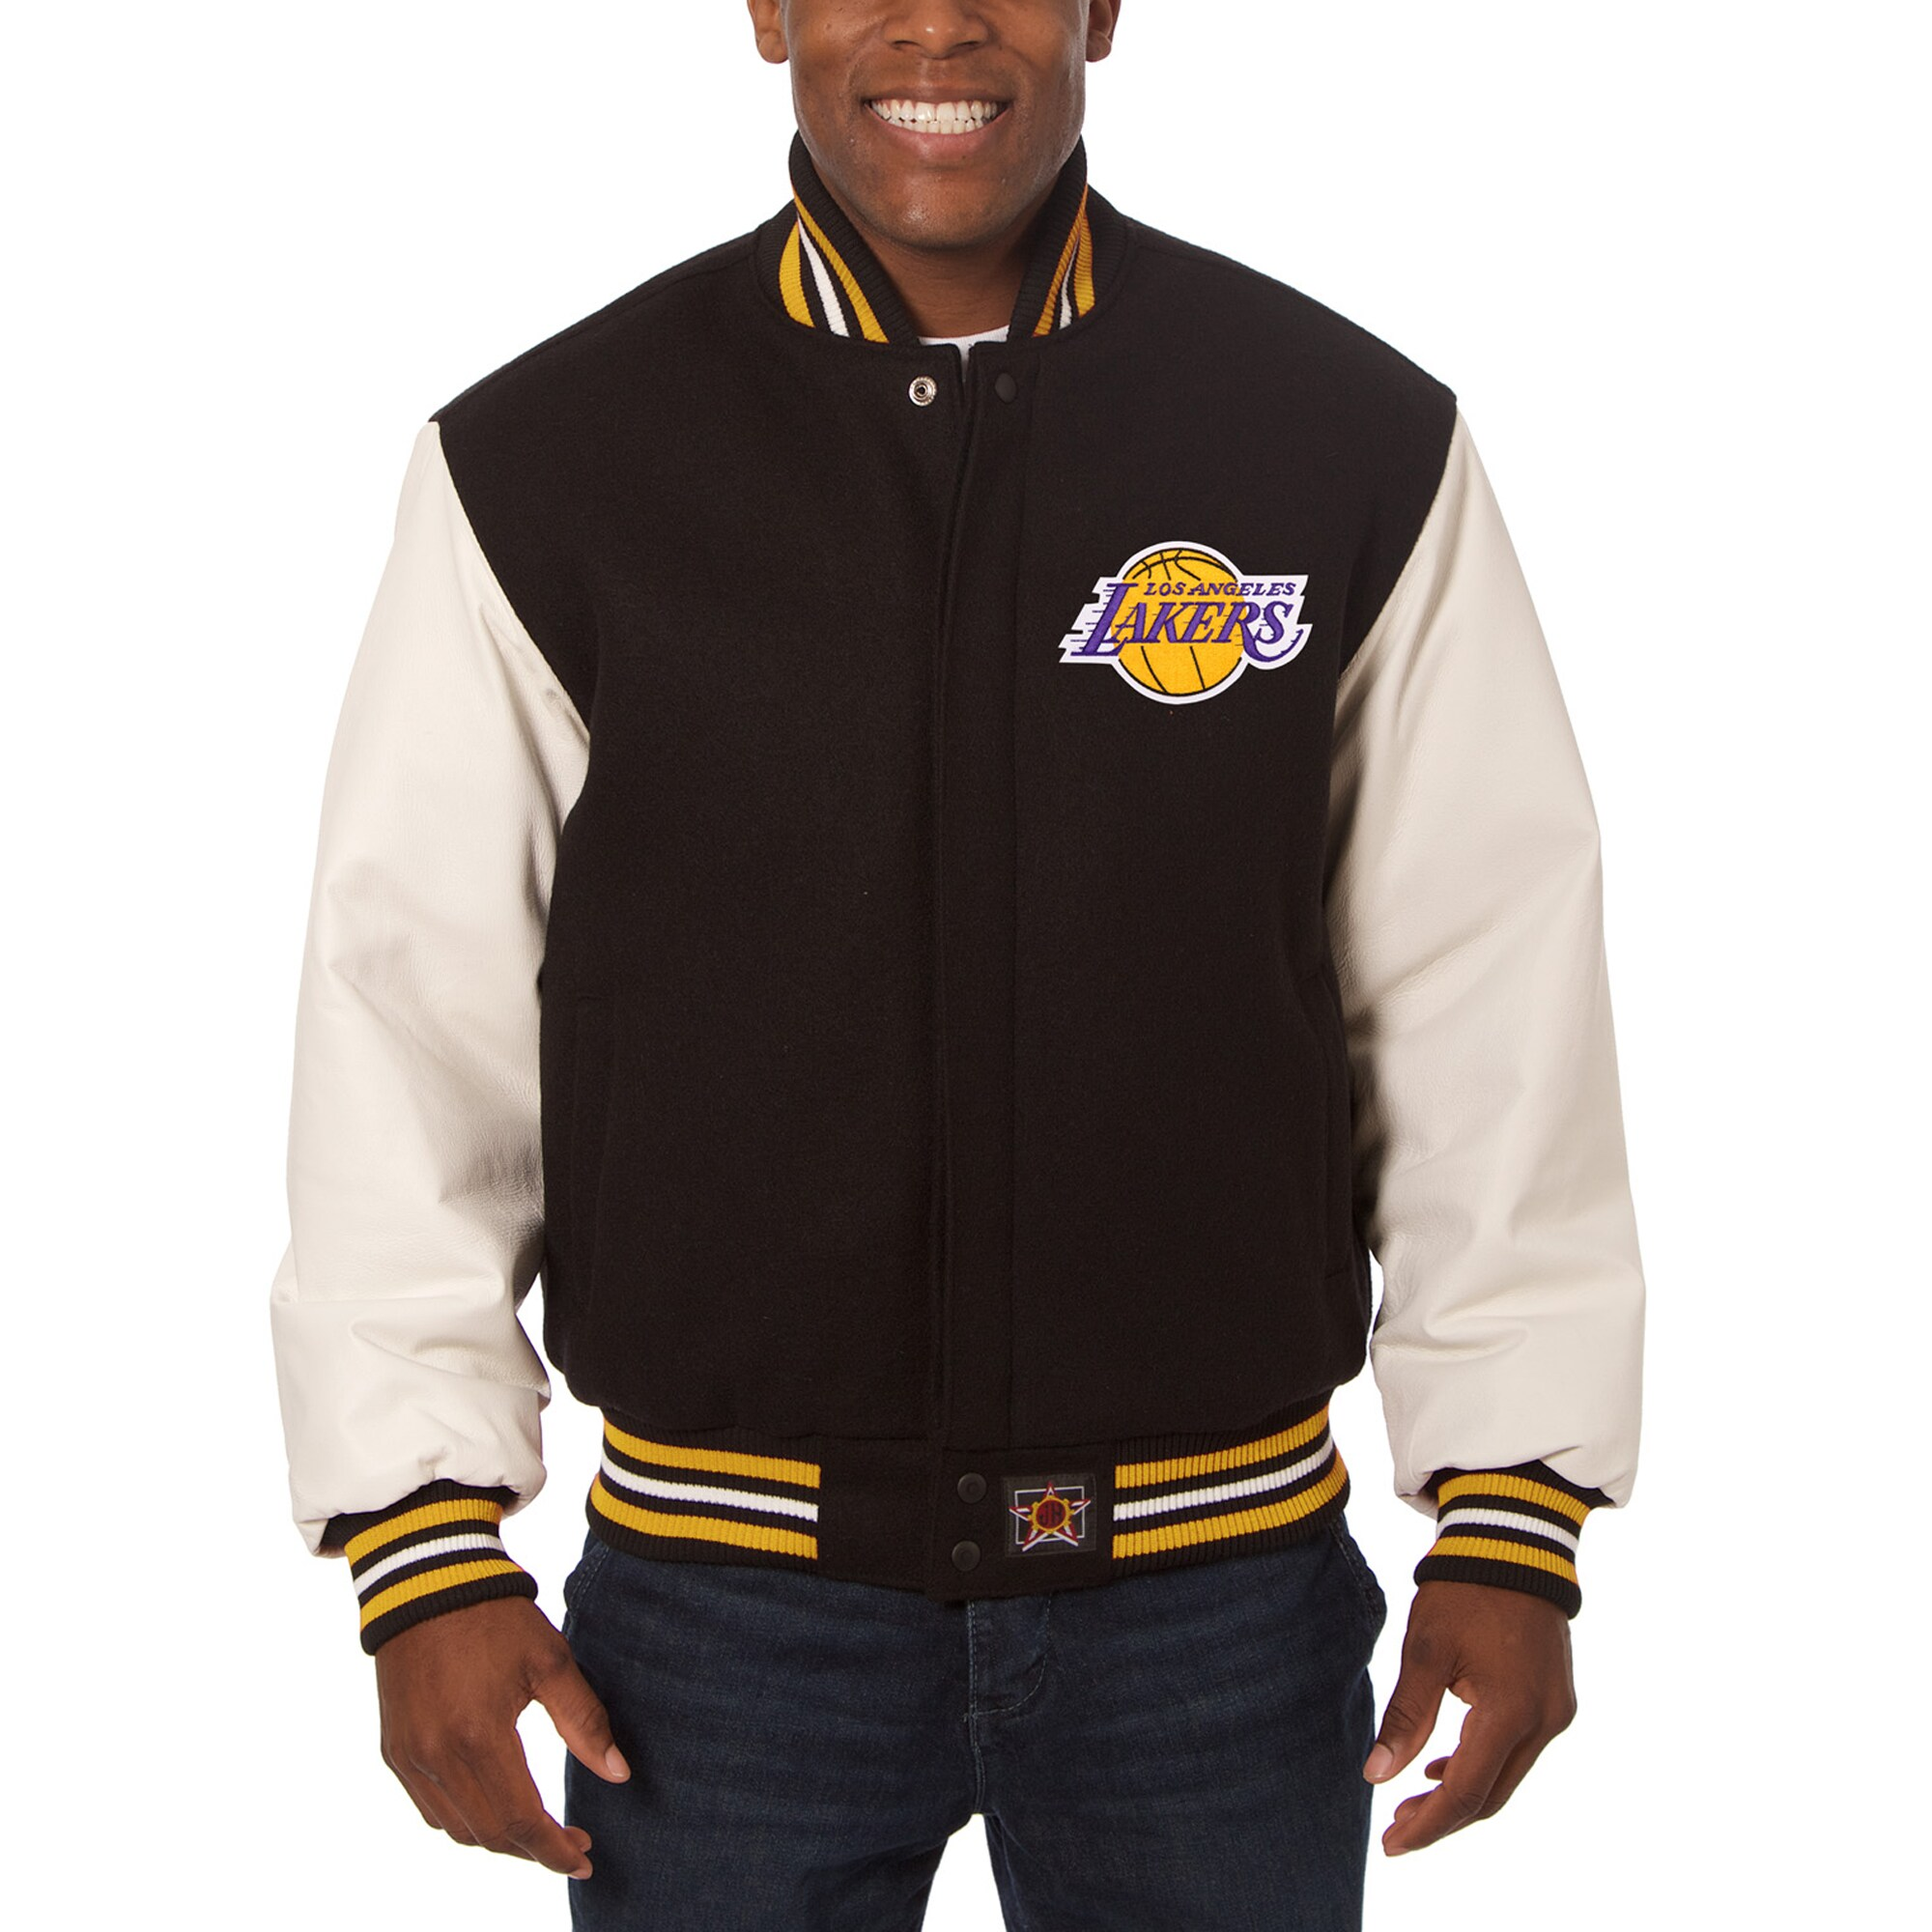 Los Angeles Lakers JH Design Big & Tall Wool & Leather Jacket - Black/White